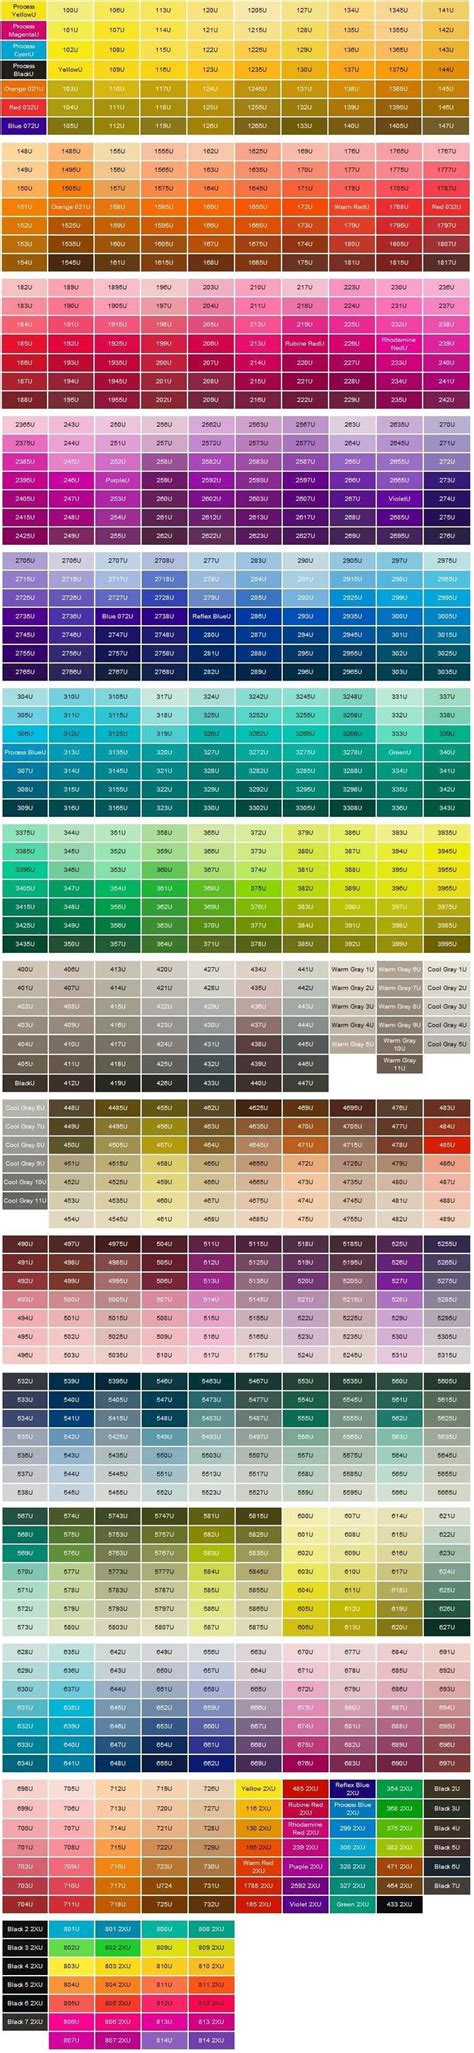 color matching paint best 25 pms color chart ideas on pinterest pms colour pantone color chart and pantone chart